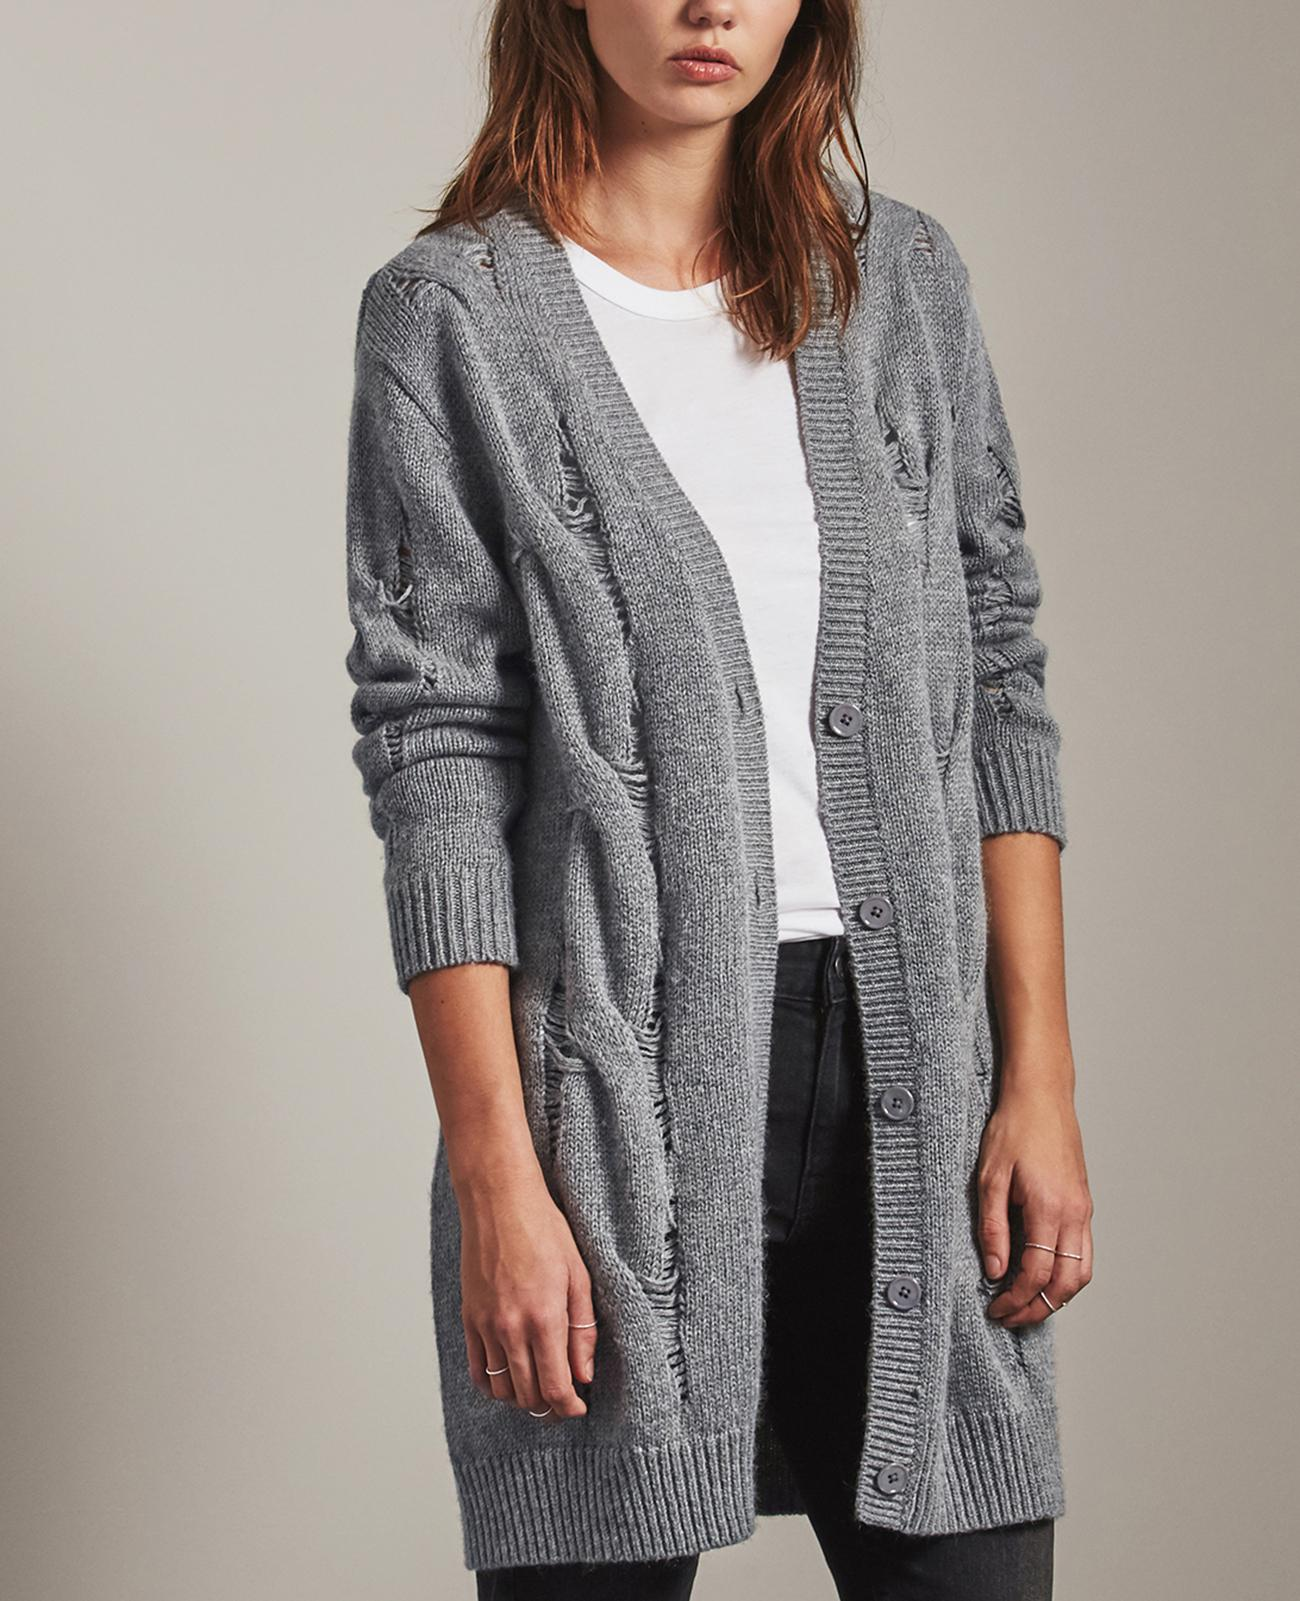 The Sandrine Cardigan